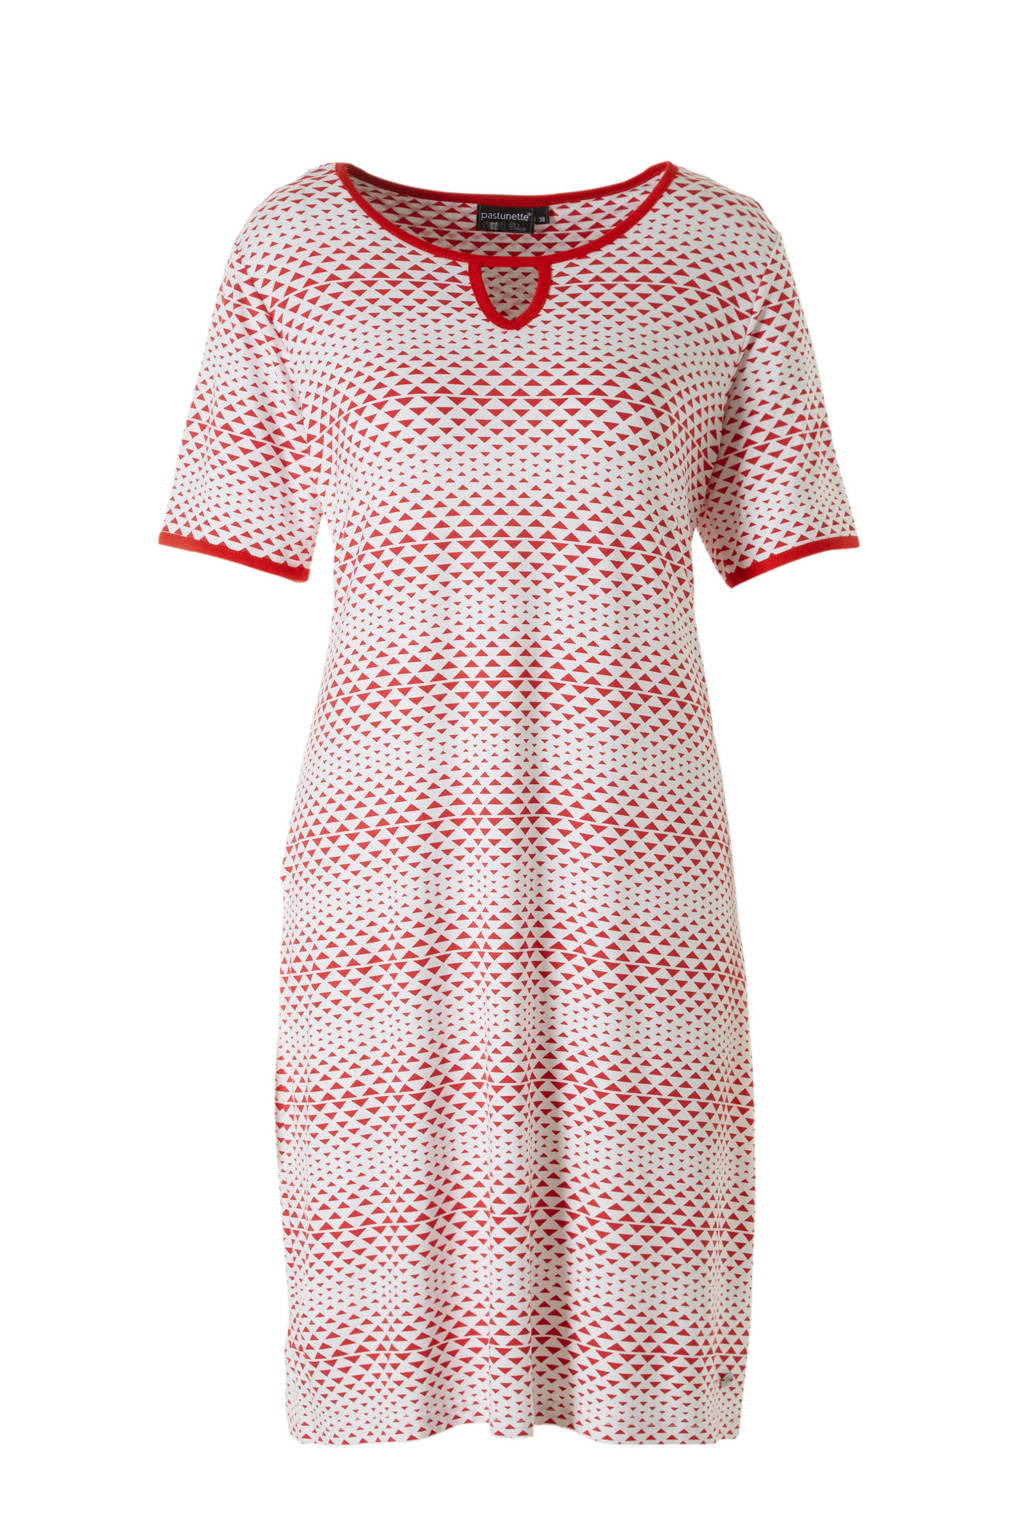 Pastunette nachthemd in all over print rood, Rood/wit